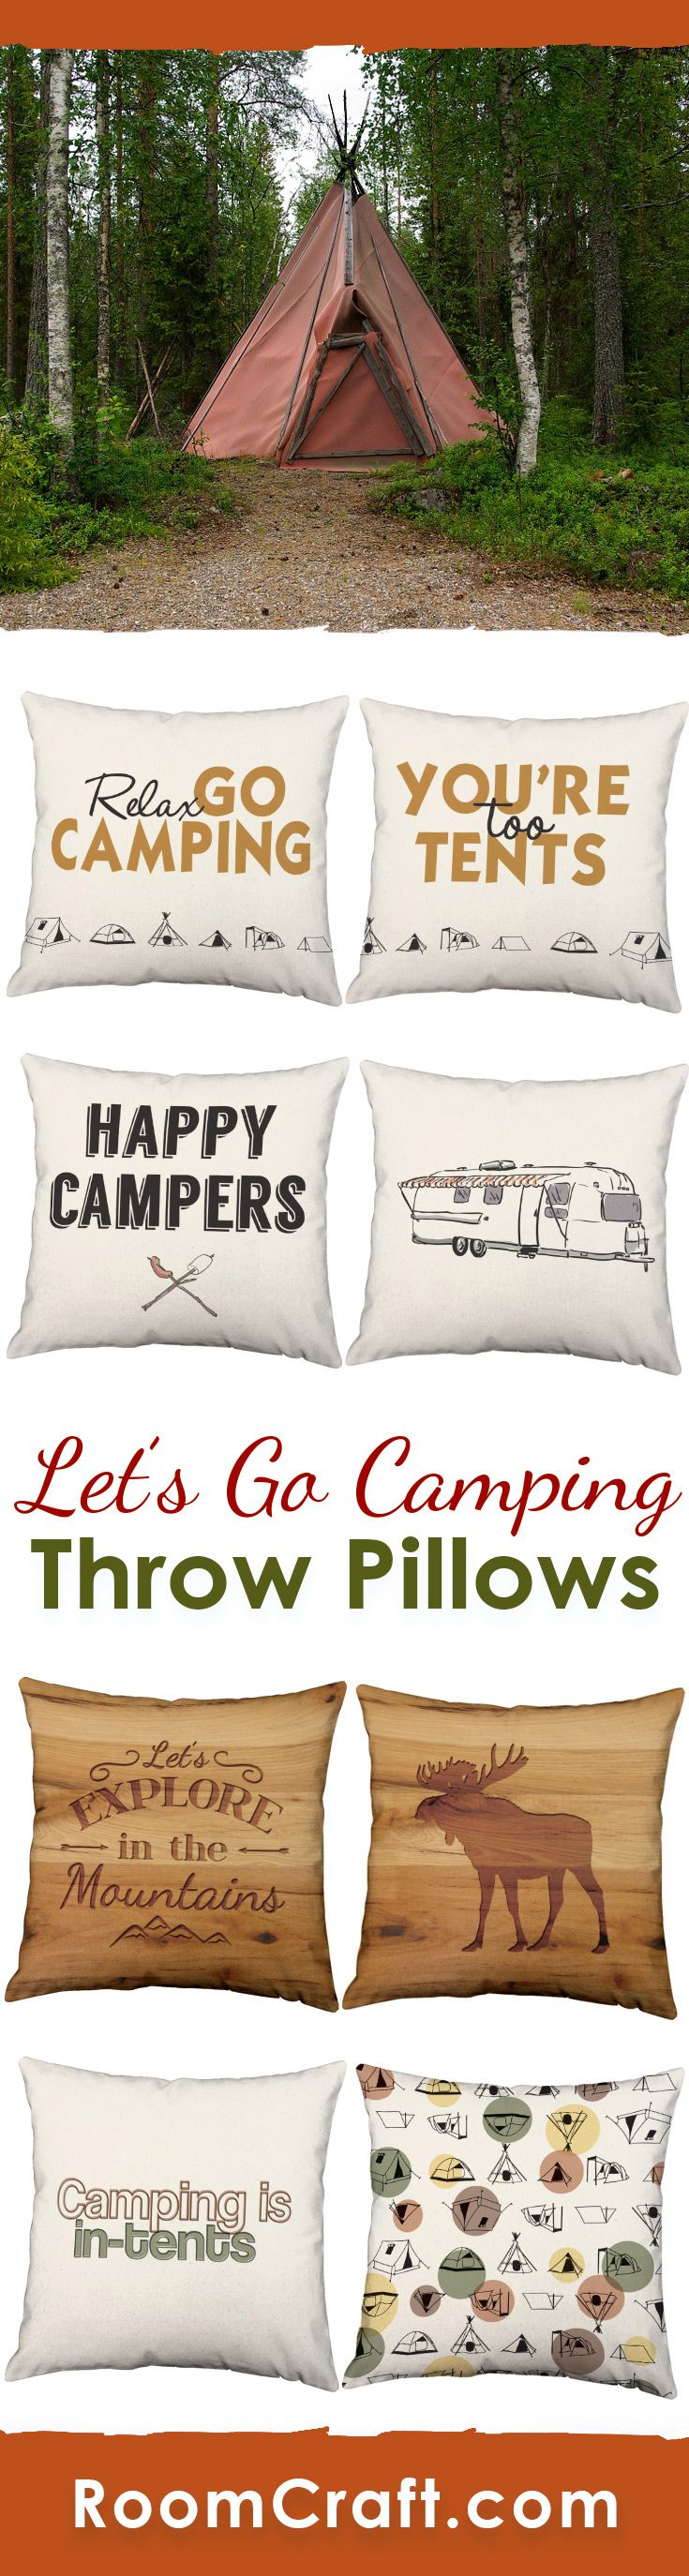 There is just something about a campfire... Share your love for the outdoors with these fun camping throw pillows. Each design is offered in multiple colors, sizes and fabrics making them perfect for your home, cabin or camper. Our quality outdoor pillow covers are made to order in the USA and feature 3 wooden buttons on the back for closure. Choose your favorite and create a truly unique pillow set. #roomcraft